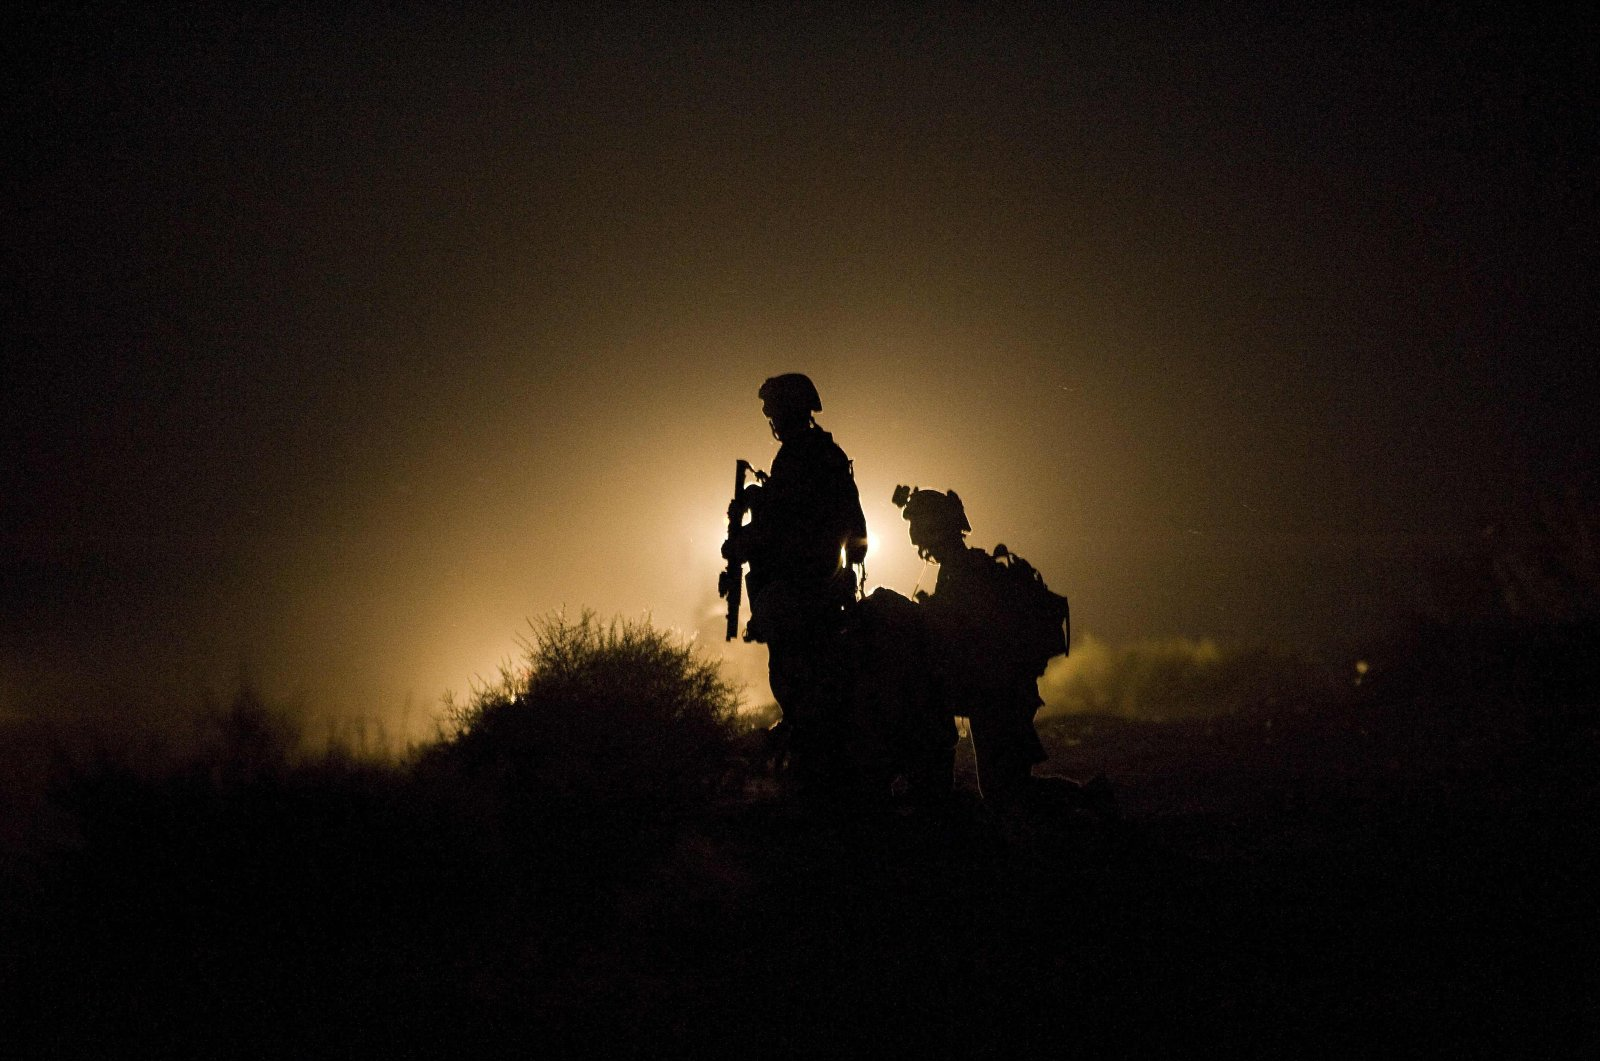 U.S. Marines stand guard as the search goes on for missing soldiers after an Improvised Explosive Device (IED) blast in Garmsir district of Helmand Province, Afghanistan, July 13, 2009. (AFP Photo)